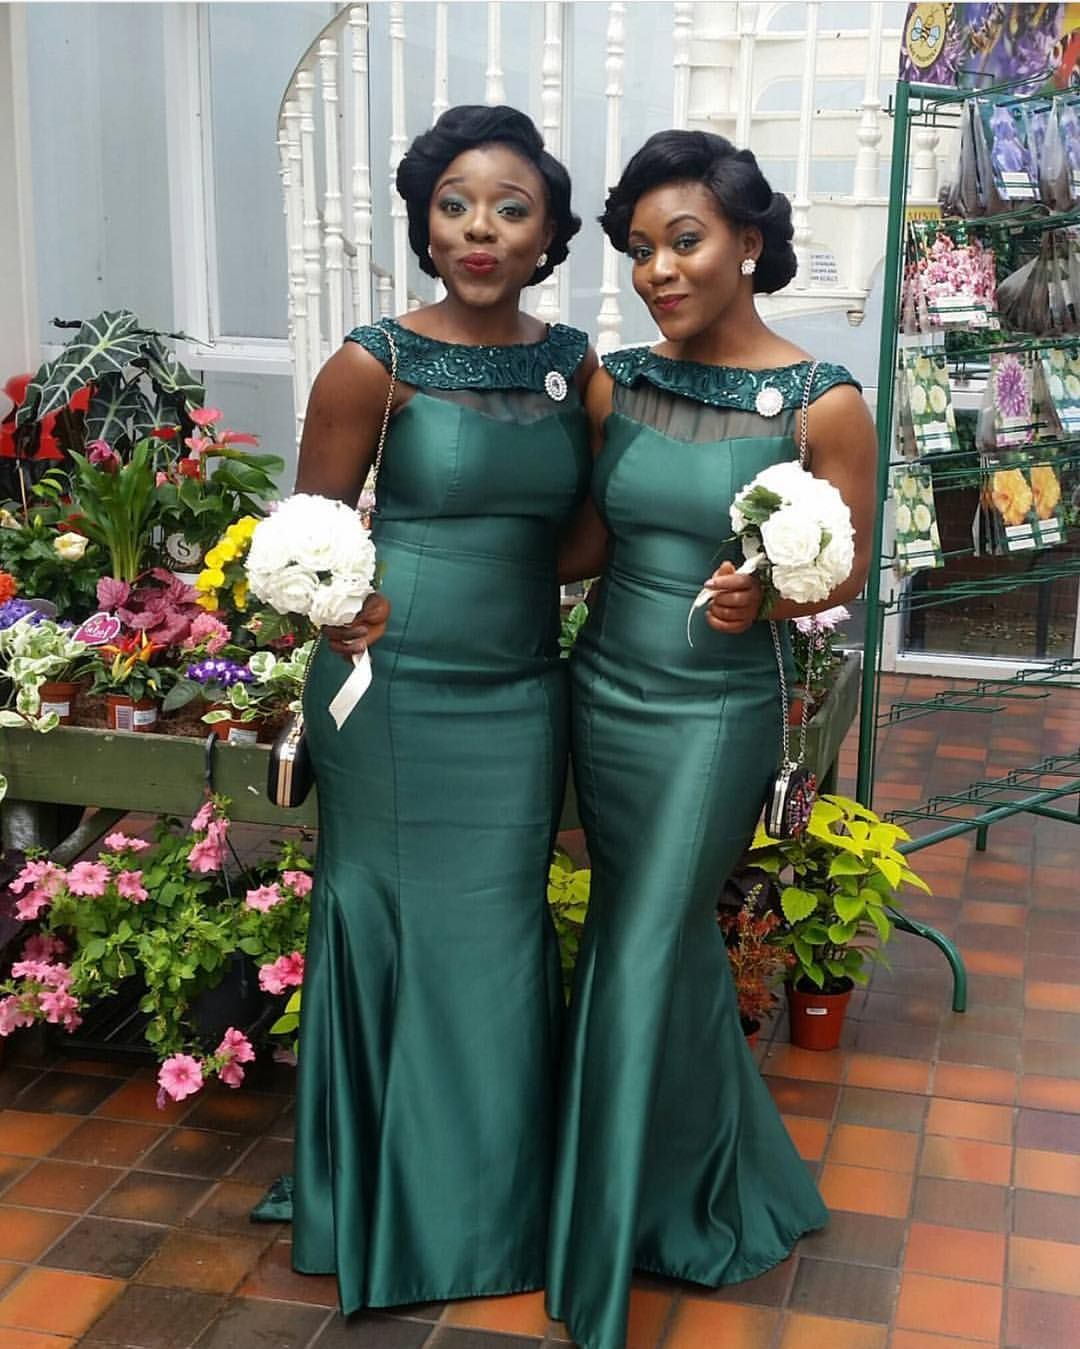 Best wedding dress boutiques in london  Where can I find good African Tailors in London Part II  Another